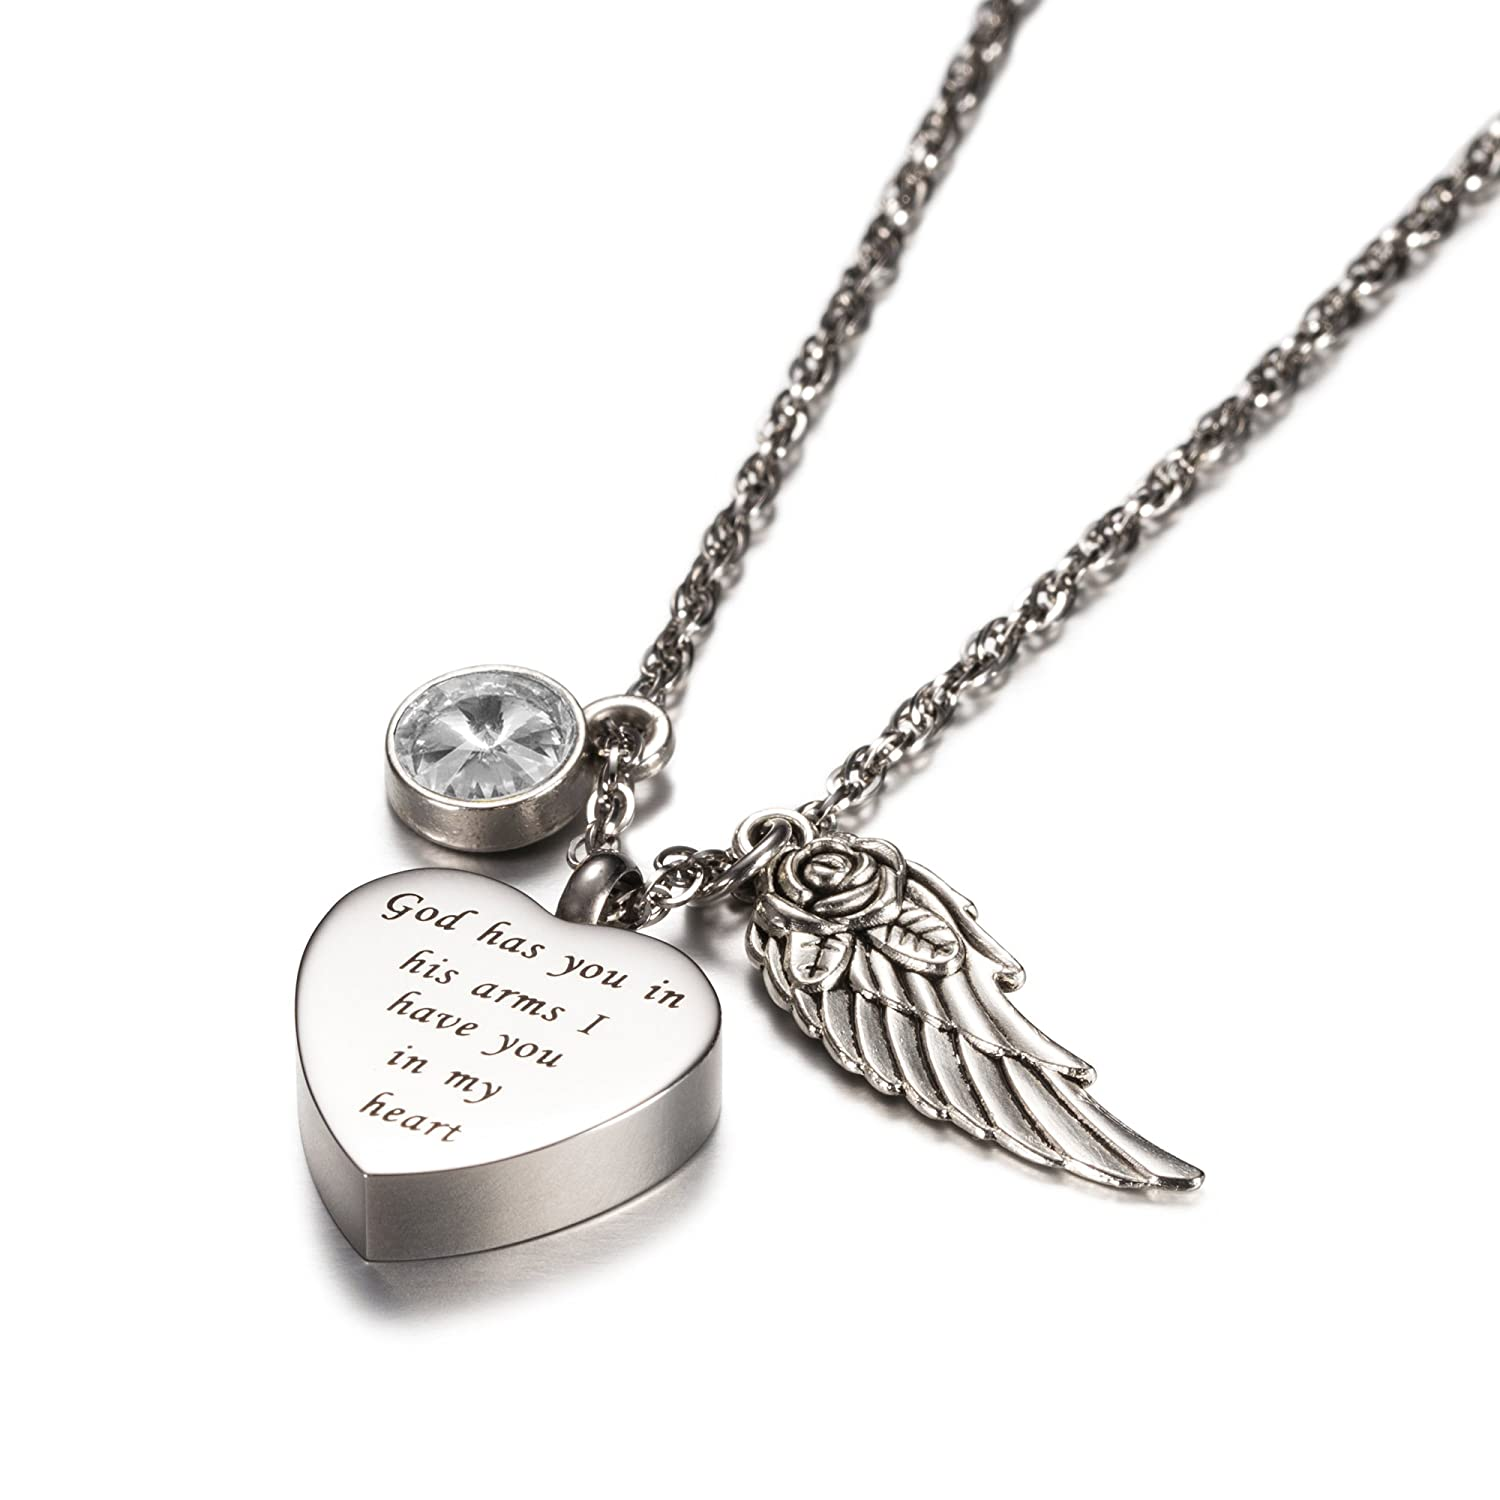 engraved mommy necklaces an of pearl simulated with keychain by daddy dots collections and necklace angel memorial set sugar products